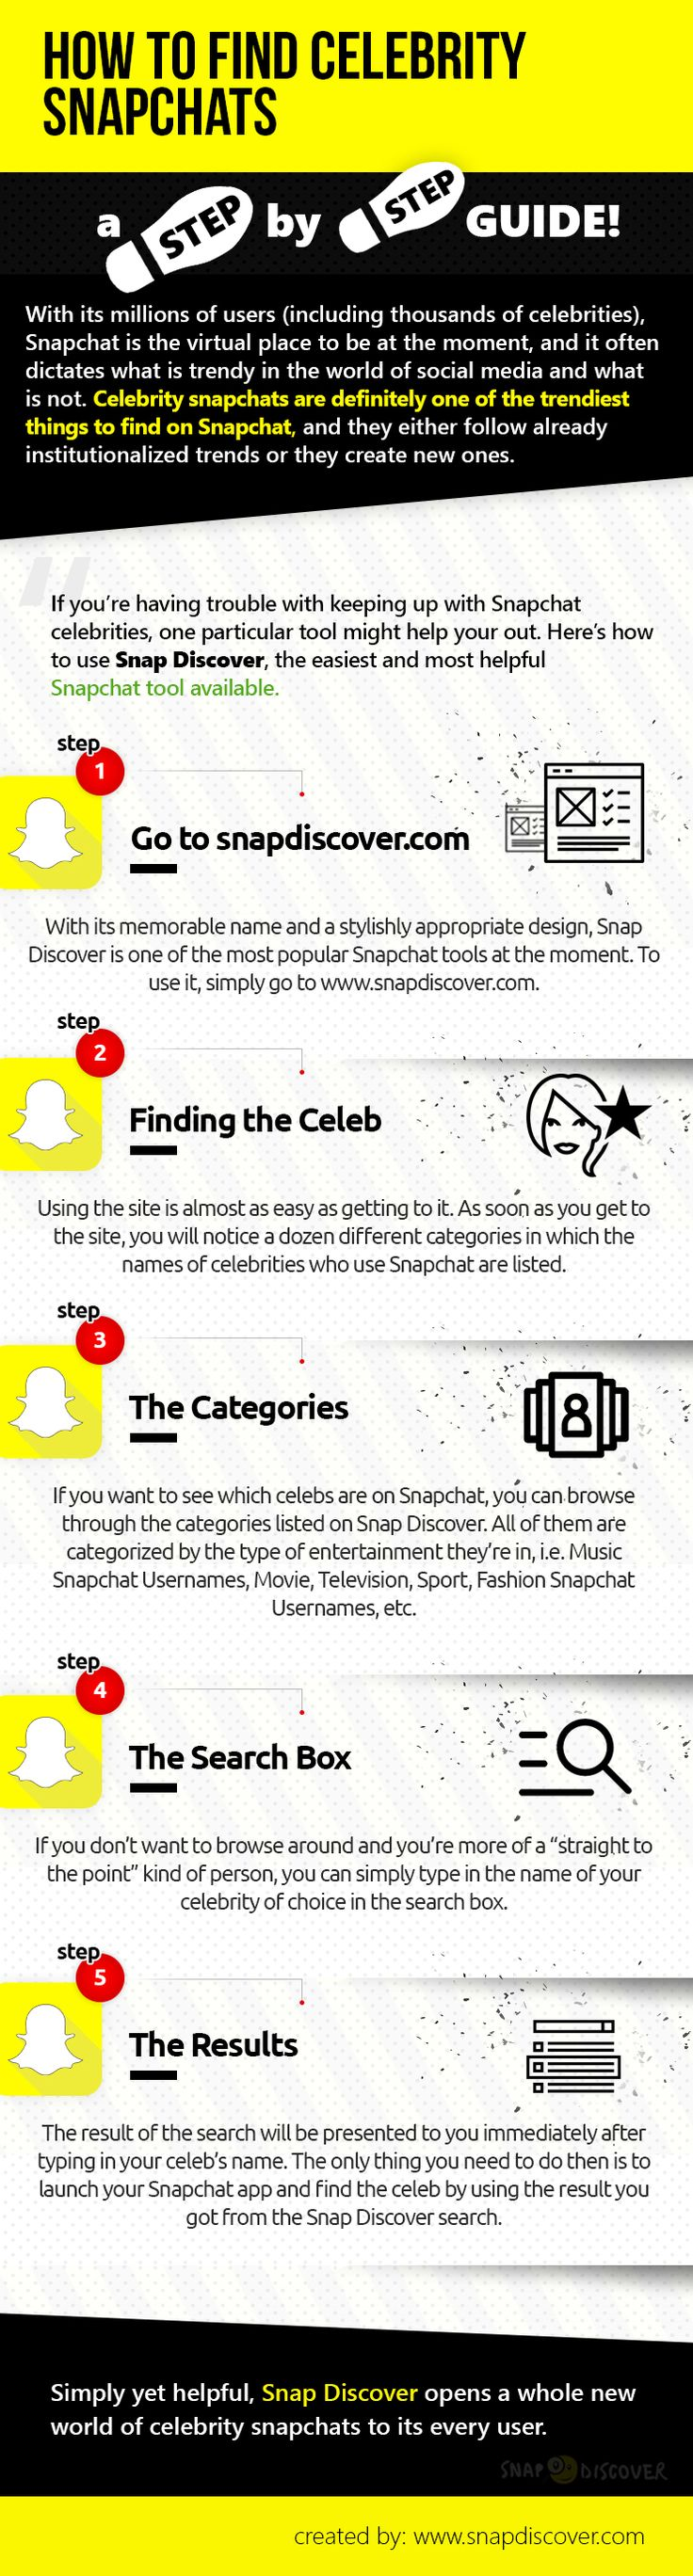 With its millions of users (including thousands of celebrities), Snapchat is the virtual place to be  at the moment, and it often dictates what is trendy in the world of social media and what is not. Celebrity snapchats are definitely one of the trendiest things to find on Snapchat, and they either follow already institutionalized trends or they create new ones.